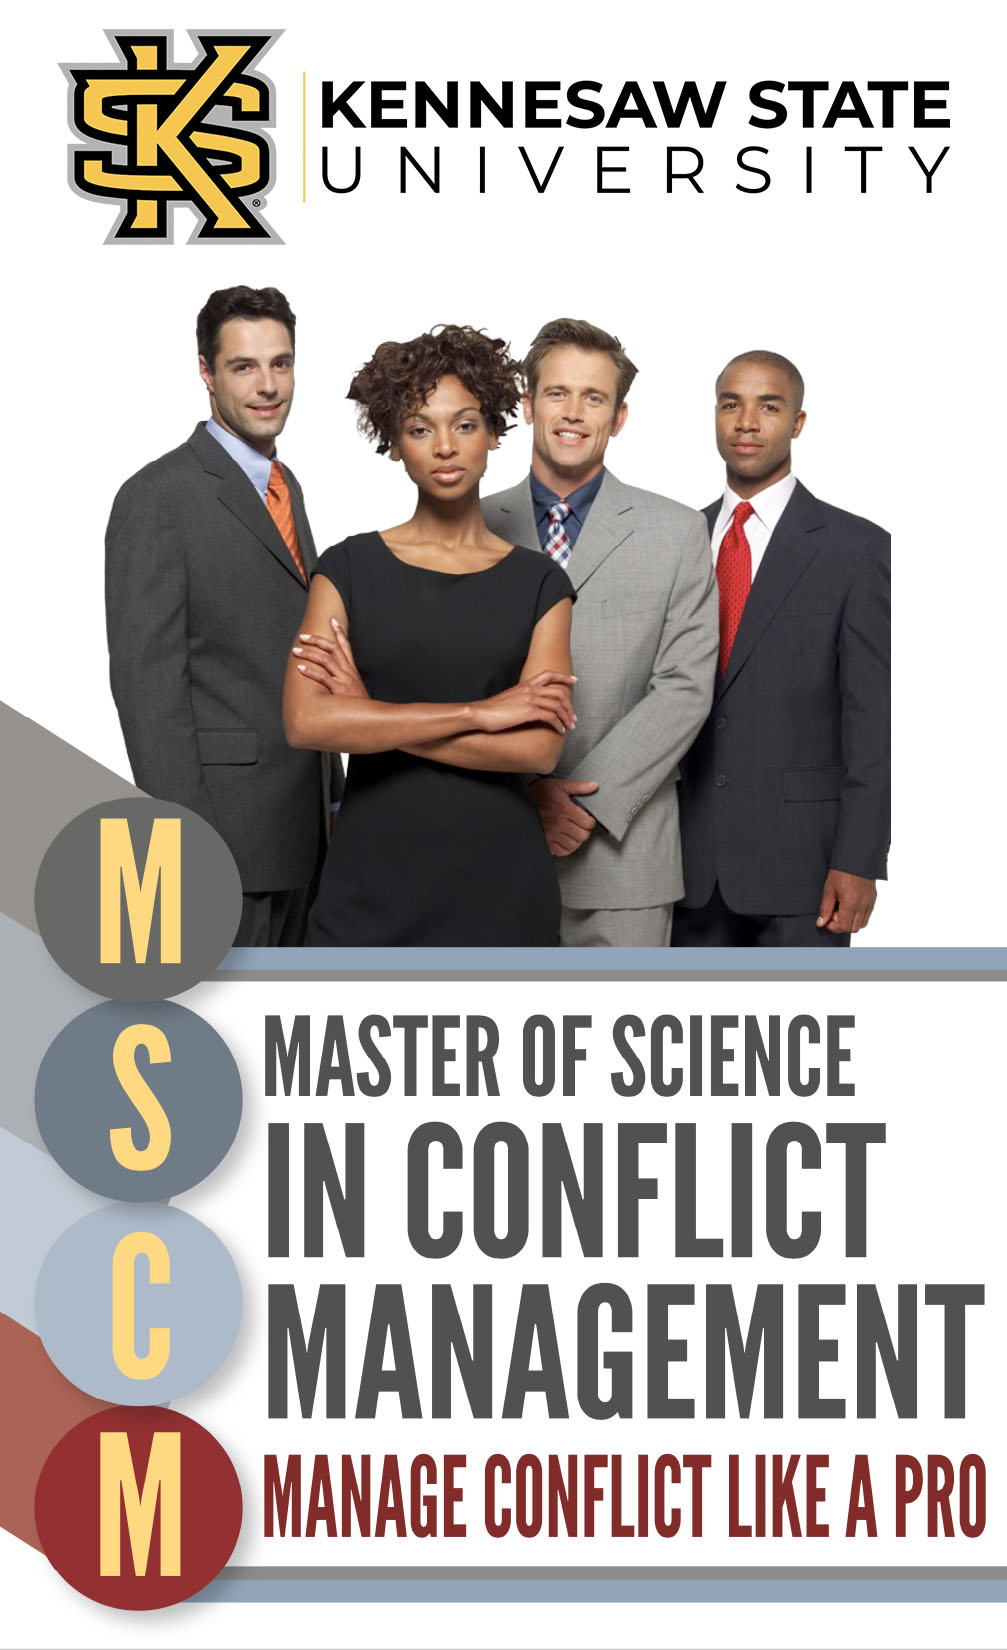 MS in Conflict Management at KSU